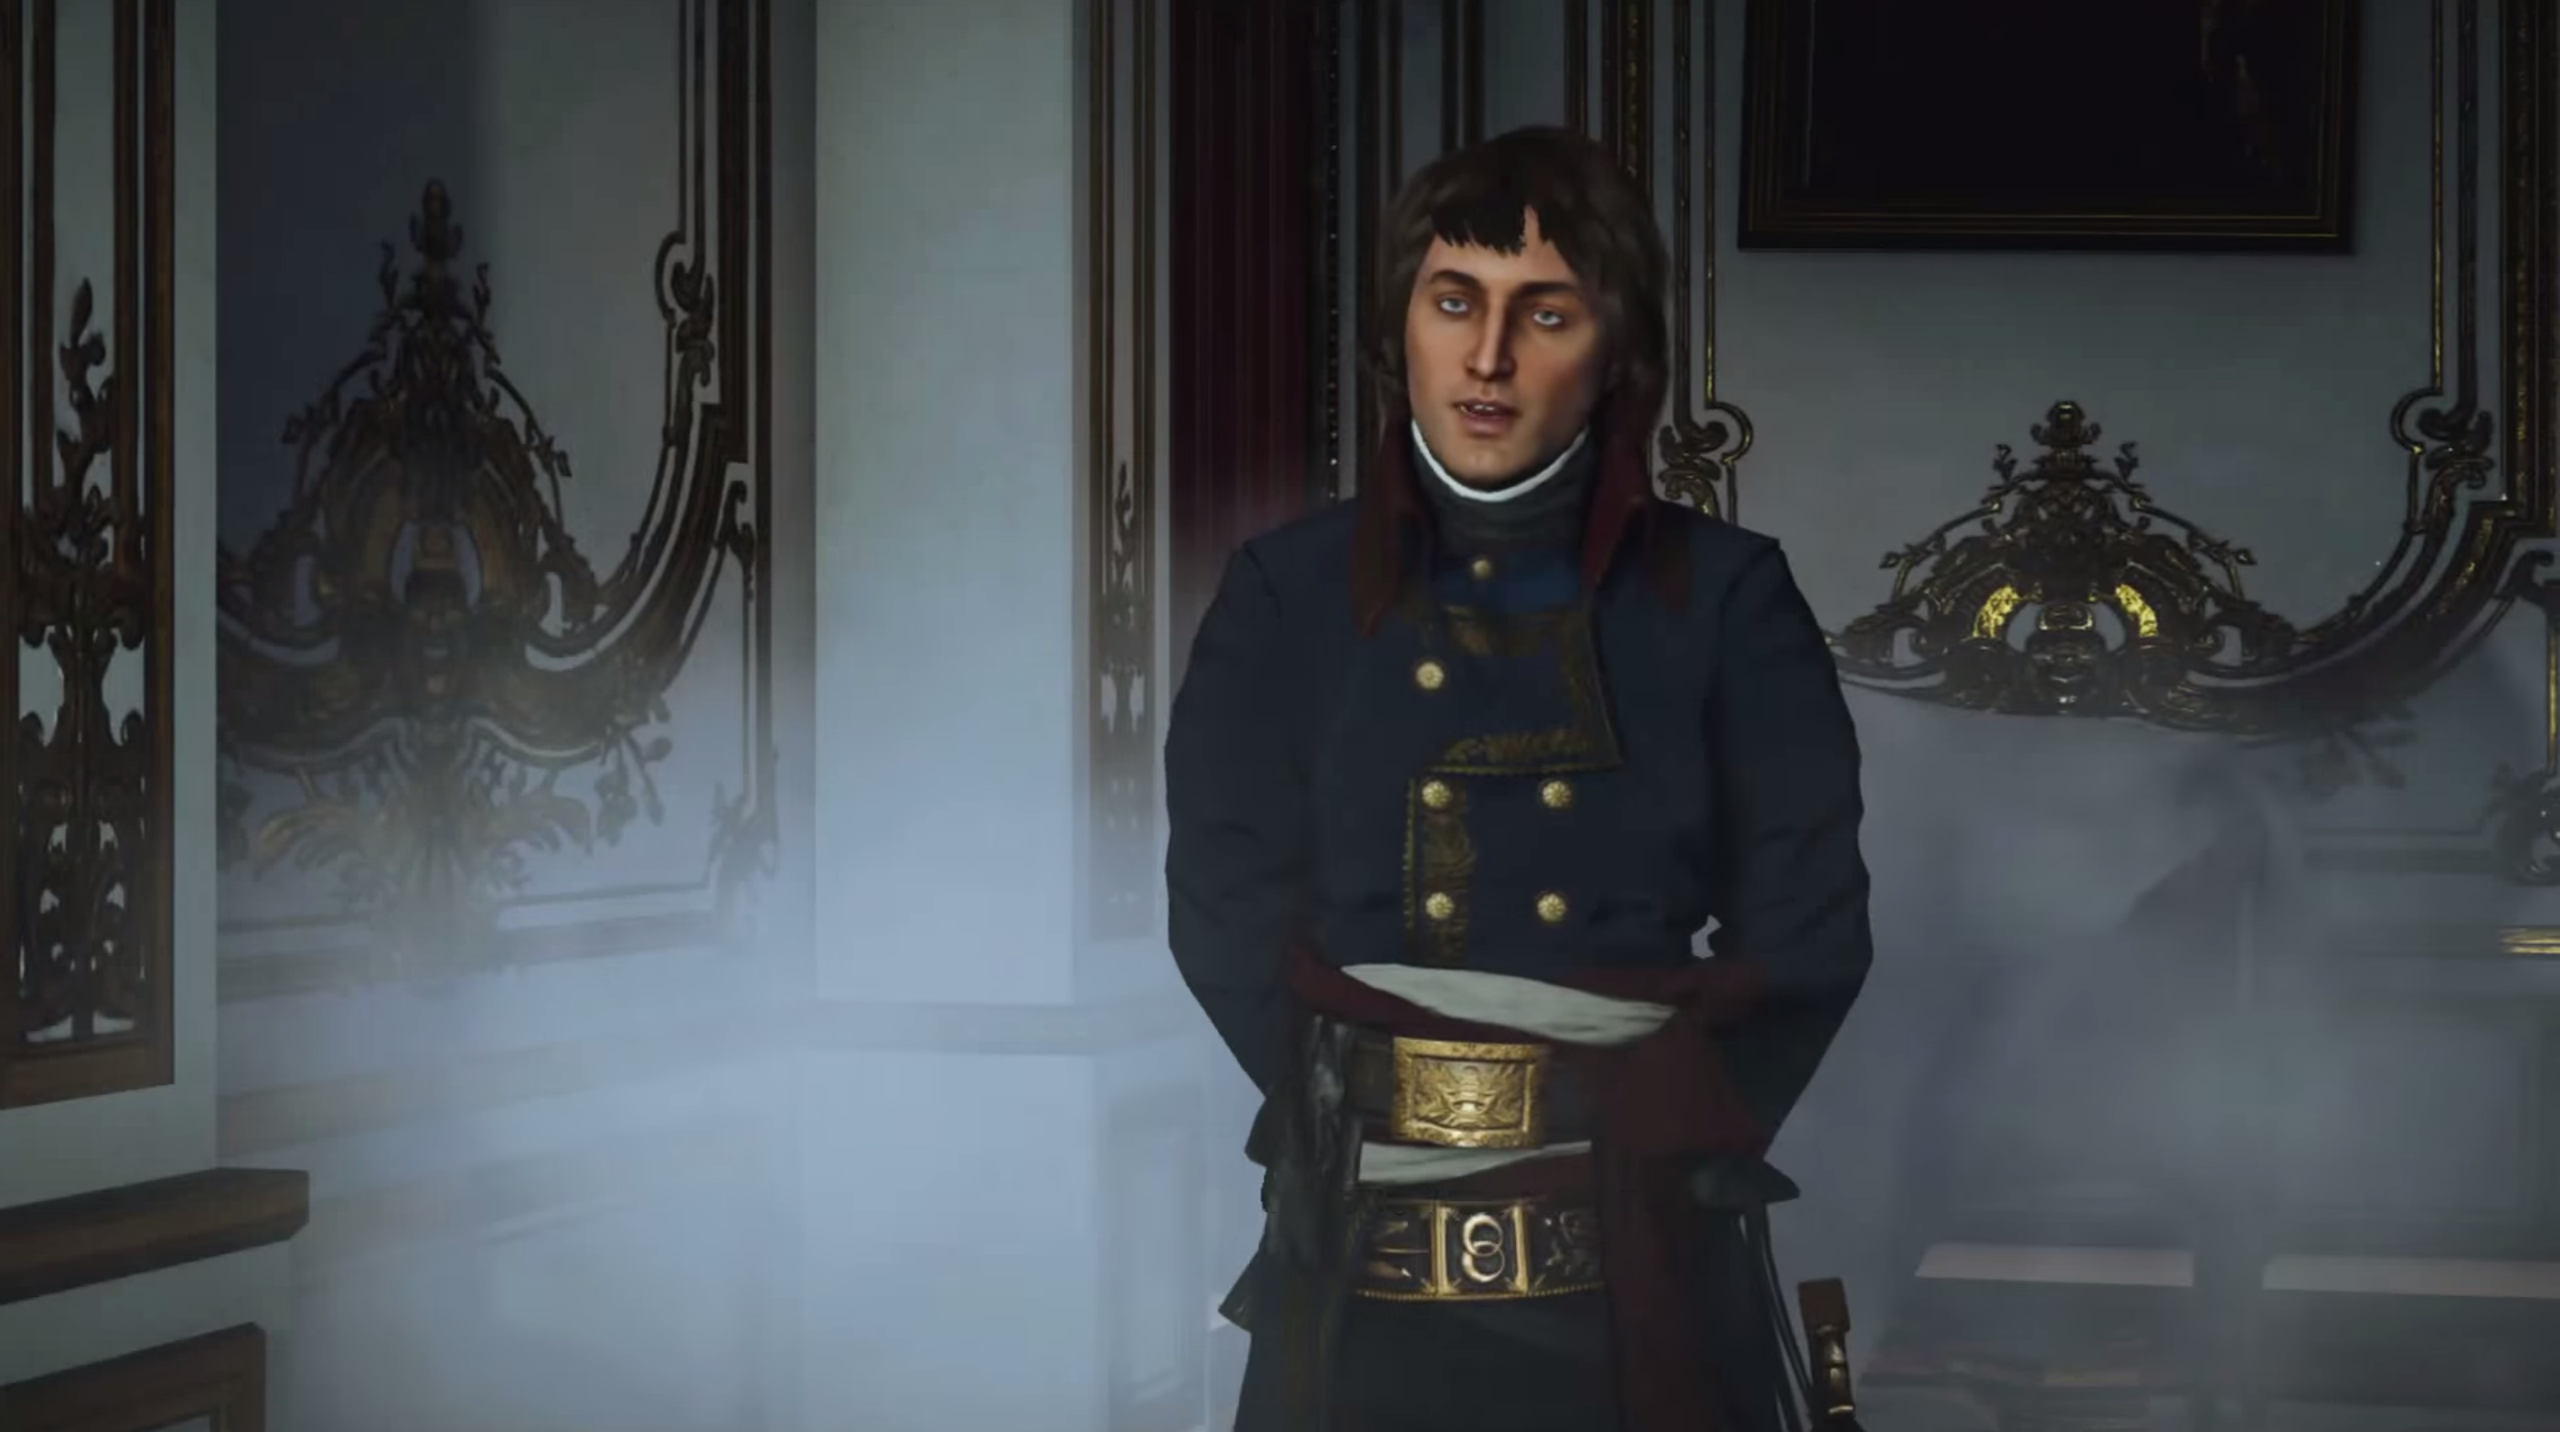 image napoleon 2 png assassin s creed wiki fandom powered by full resolution